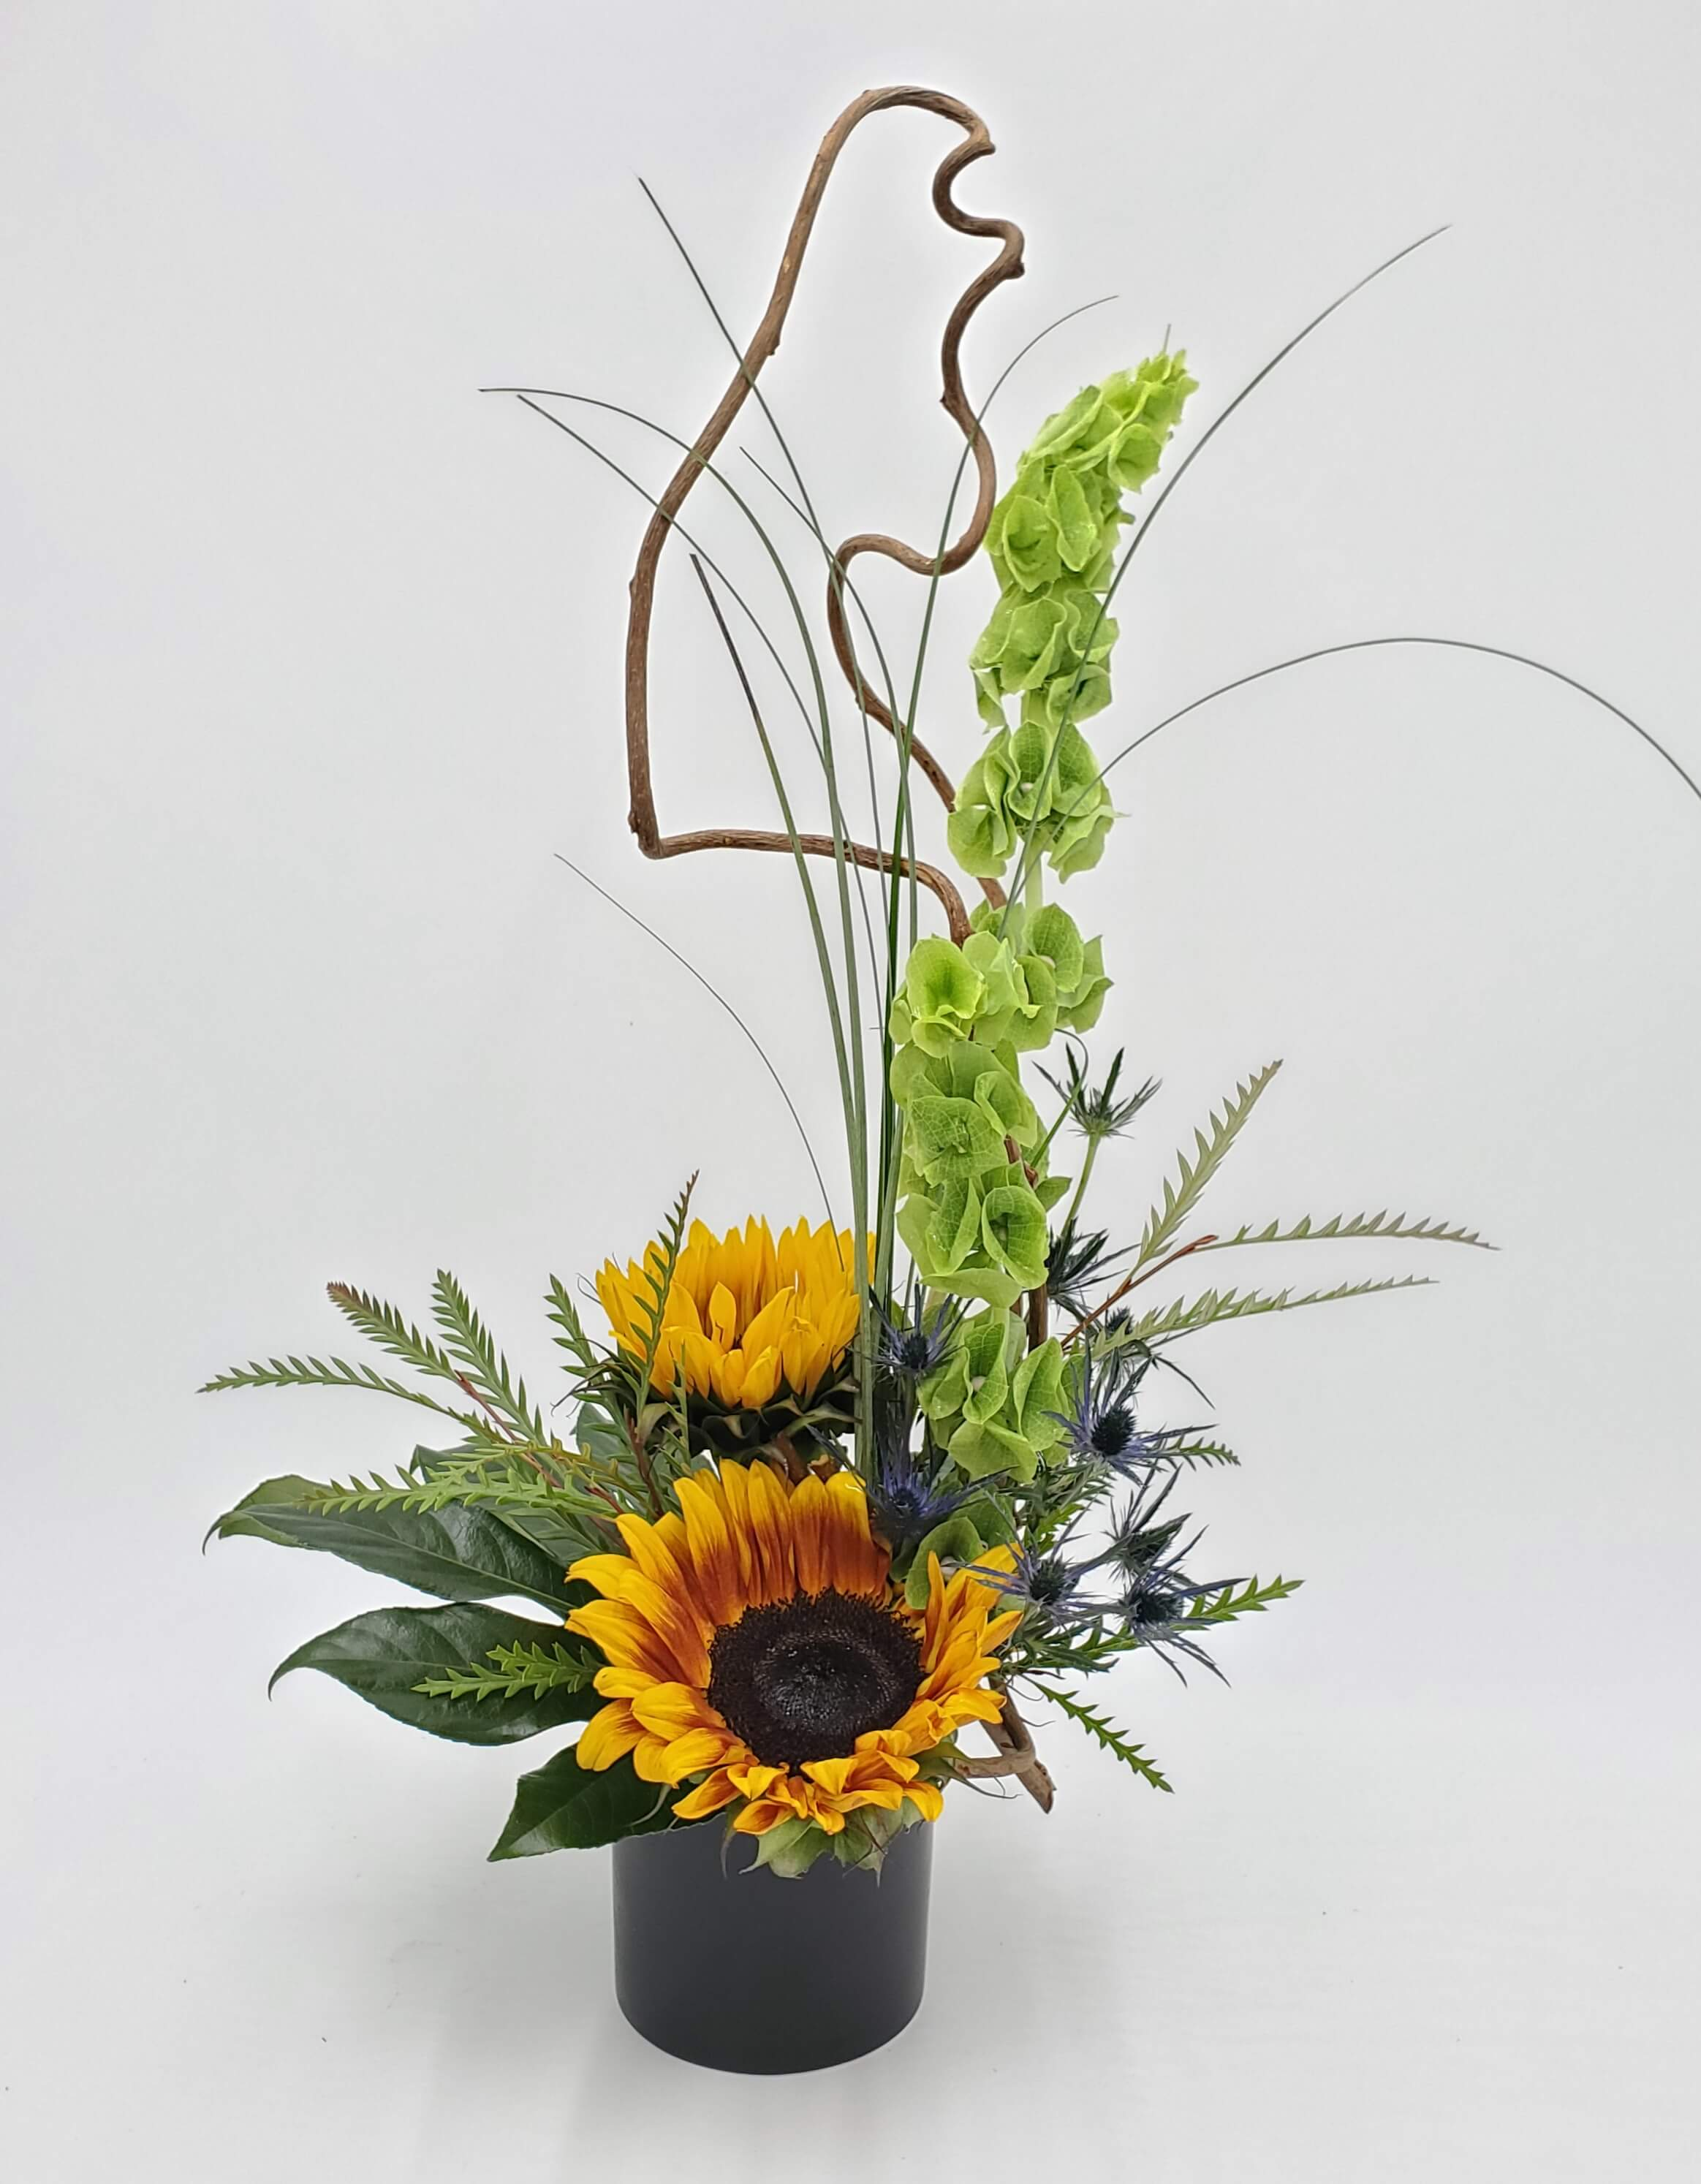 Naturalistic floral design with sunflowers